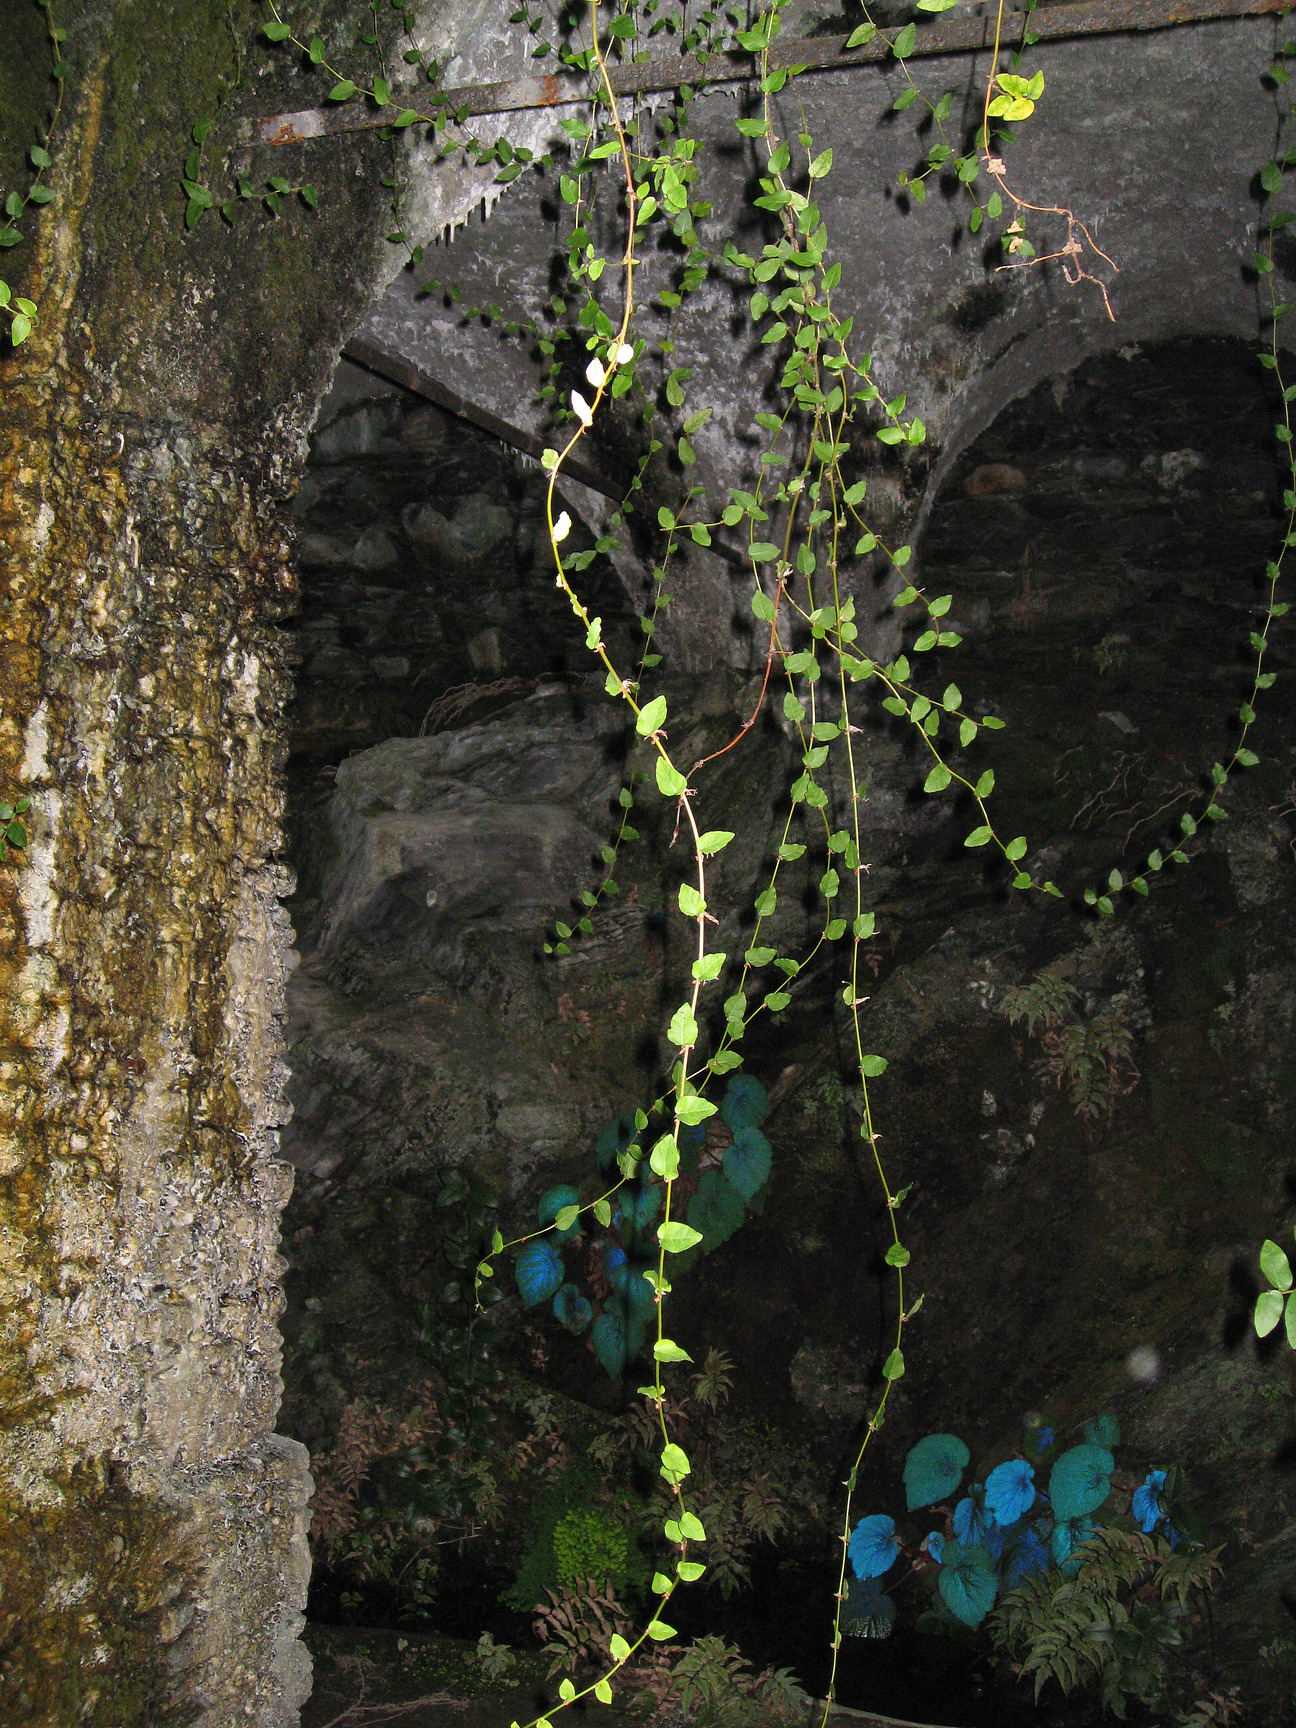 (above) The gardens of Villa San Remigio on Lake Maggiore. I found these fig ivy streamers in a limonaia with a grotto containing a stream in one of the villa's many numerous gardens, the Garden of the Hours. It's amazing what kind of exotic plants can thrive in such deep shade. The pictured iridescent blue leaf belongs to some kind of begonia.